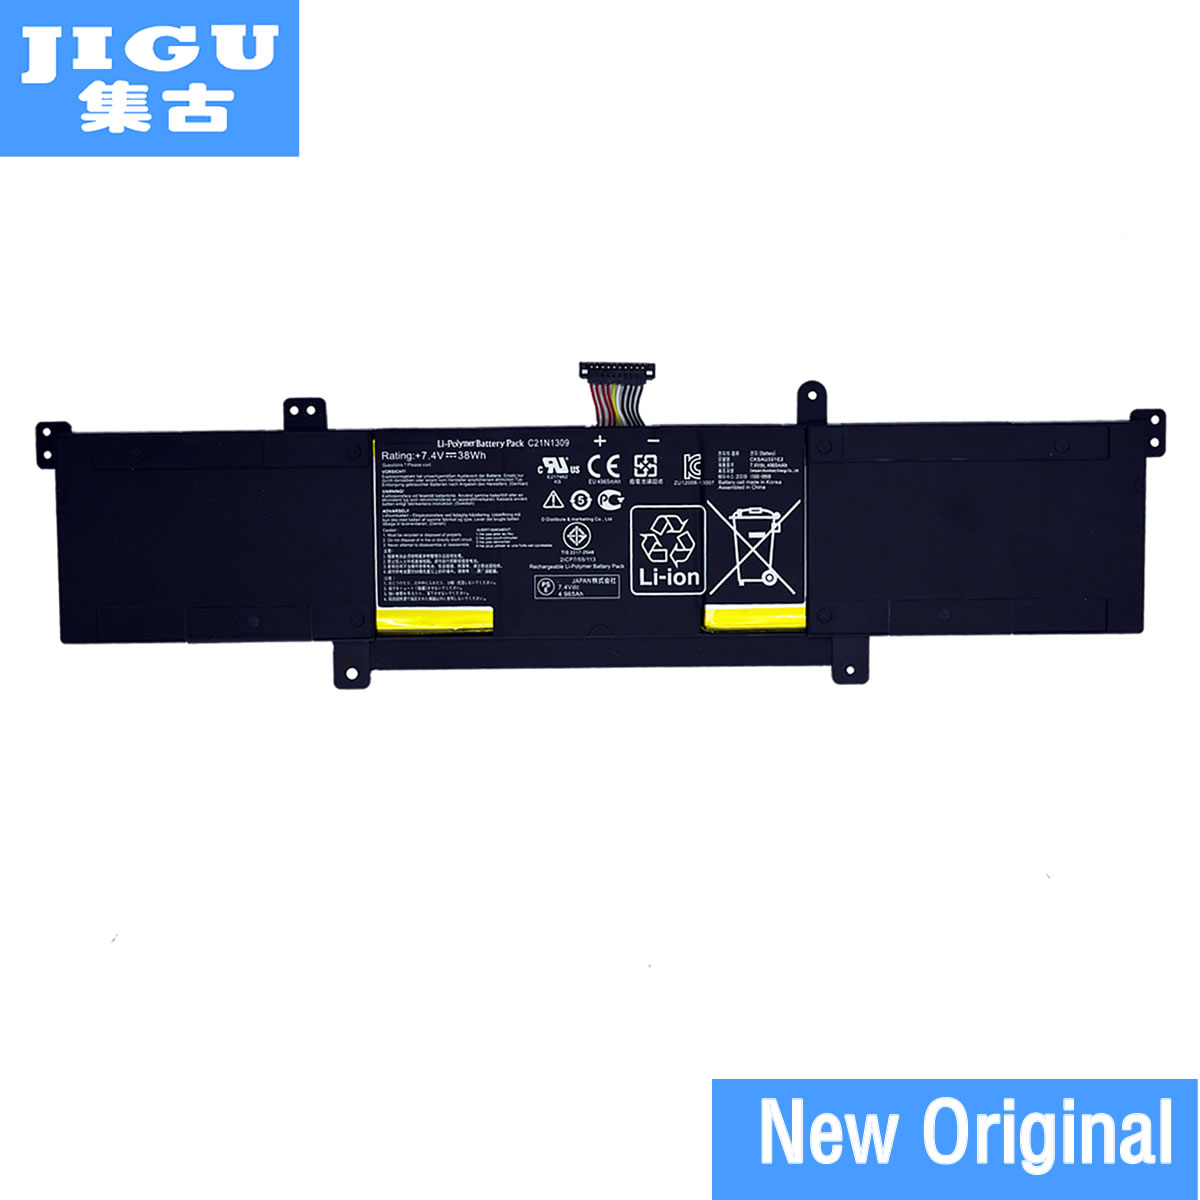 JIGU 0B200 00580100M C21N1309 C21PQ2H Original laptop Battery For ASUS Q301L for VivoBook S301LA S301LP